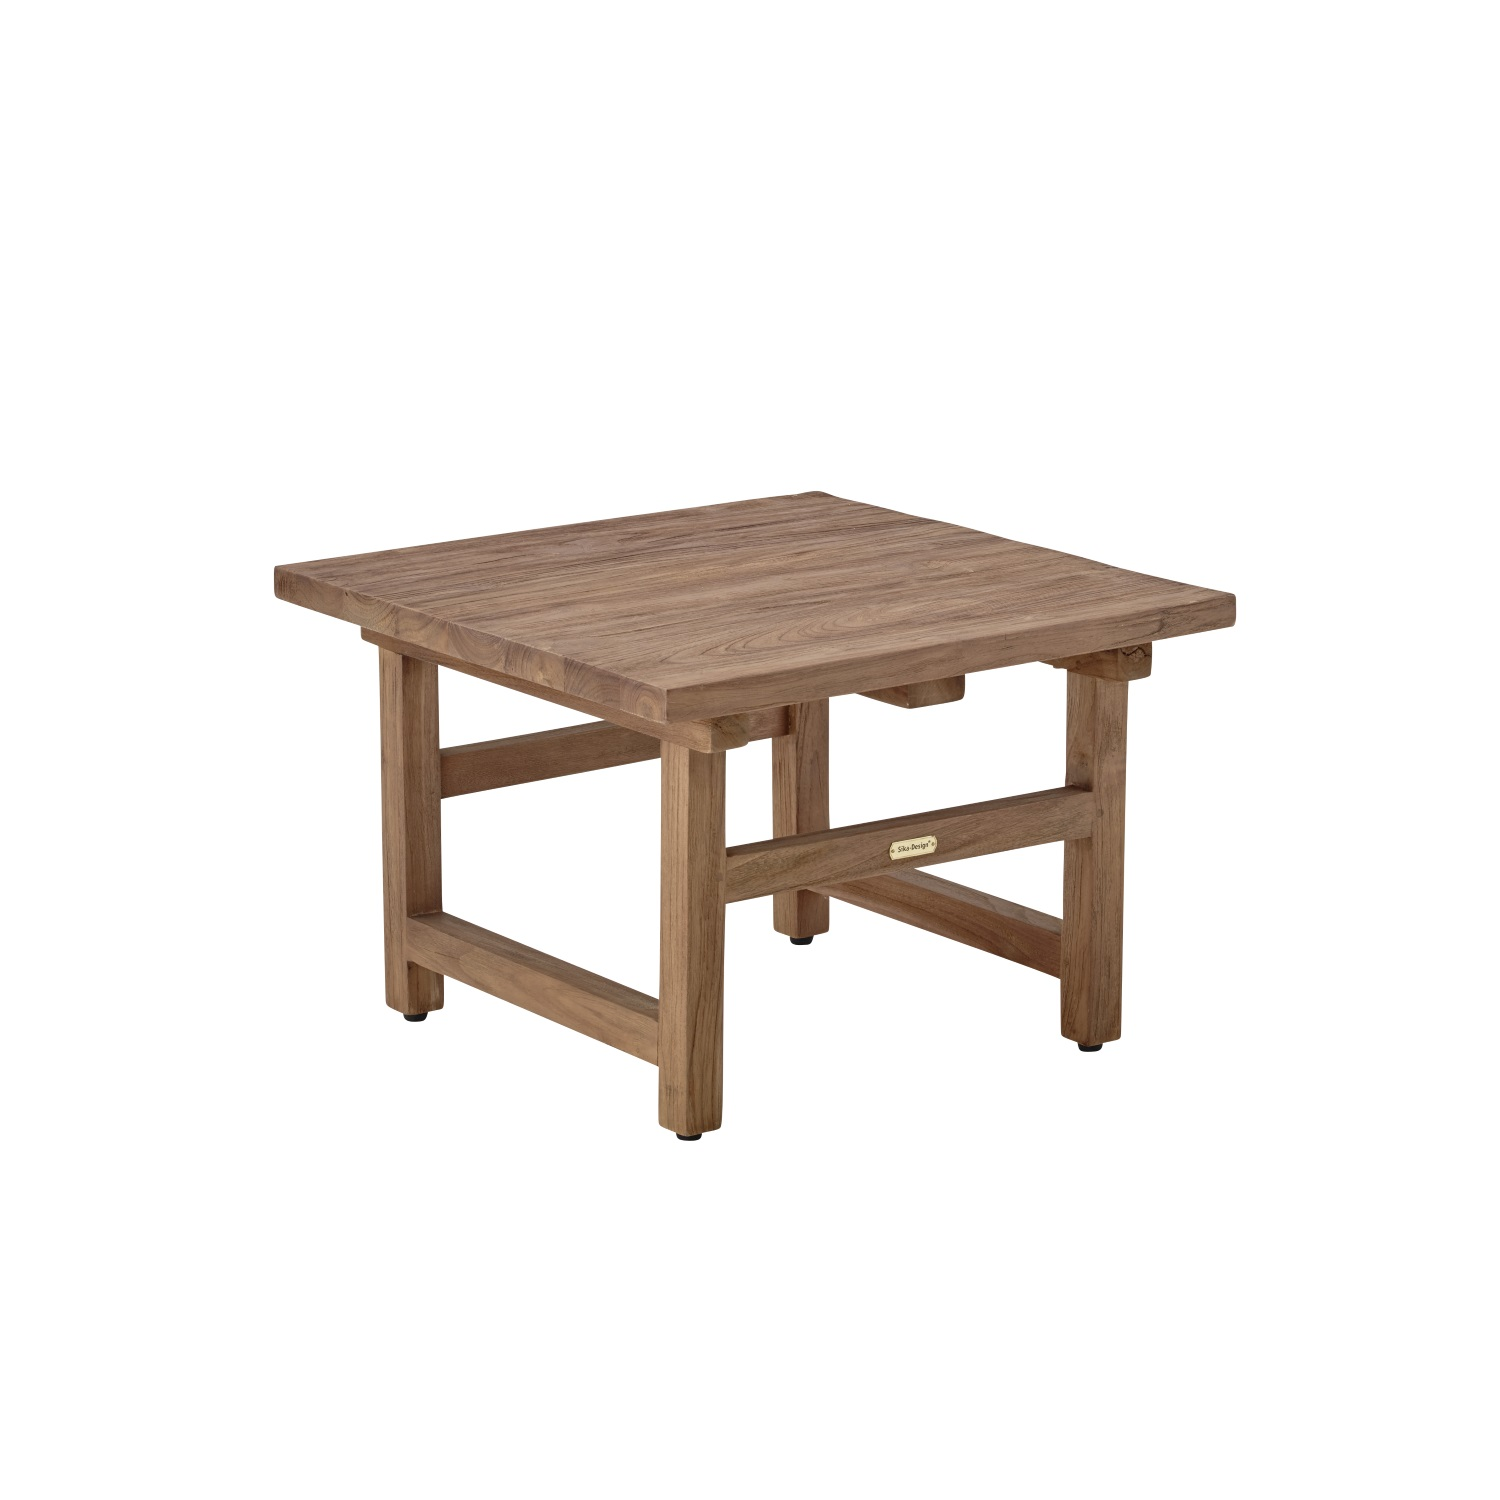 Alfred  Coffee table 60 cm teak, Sika-Design